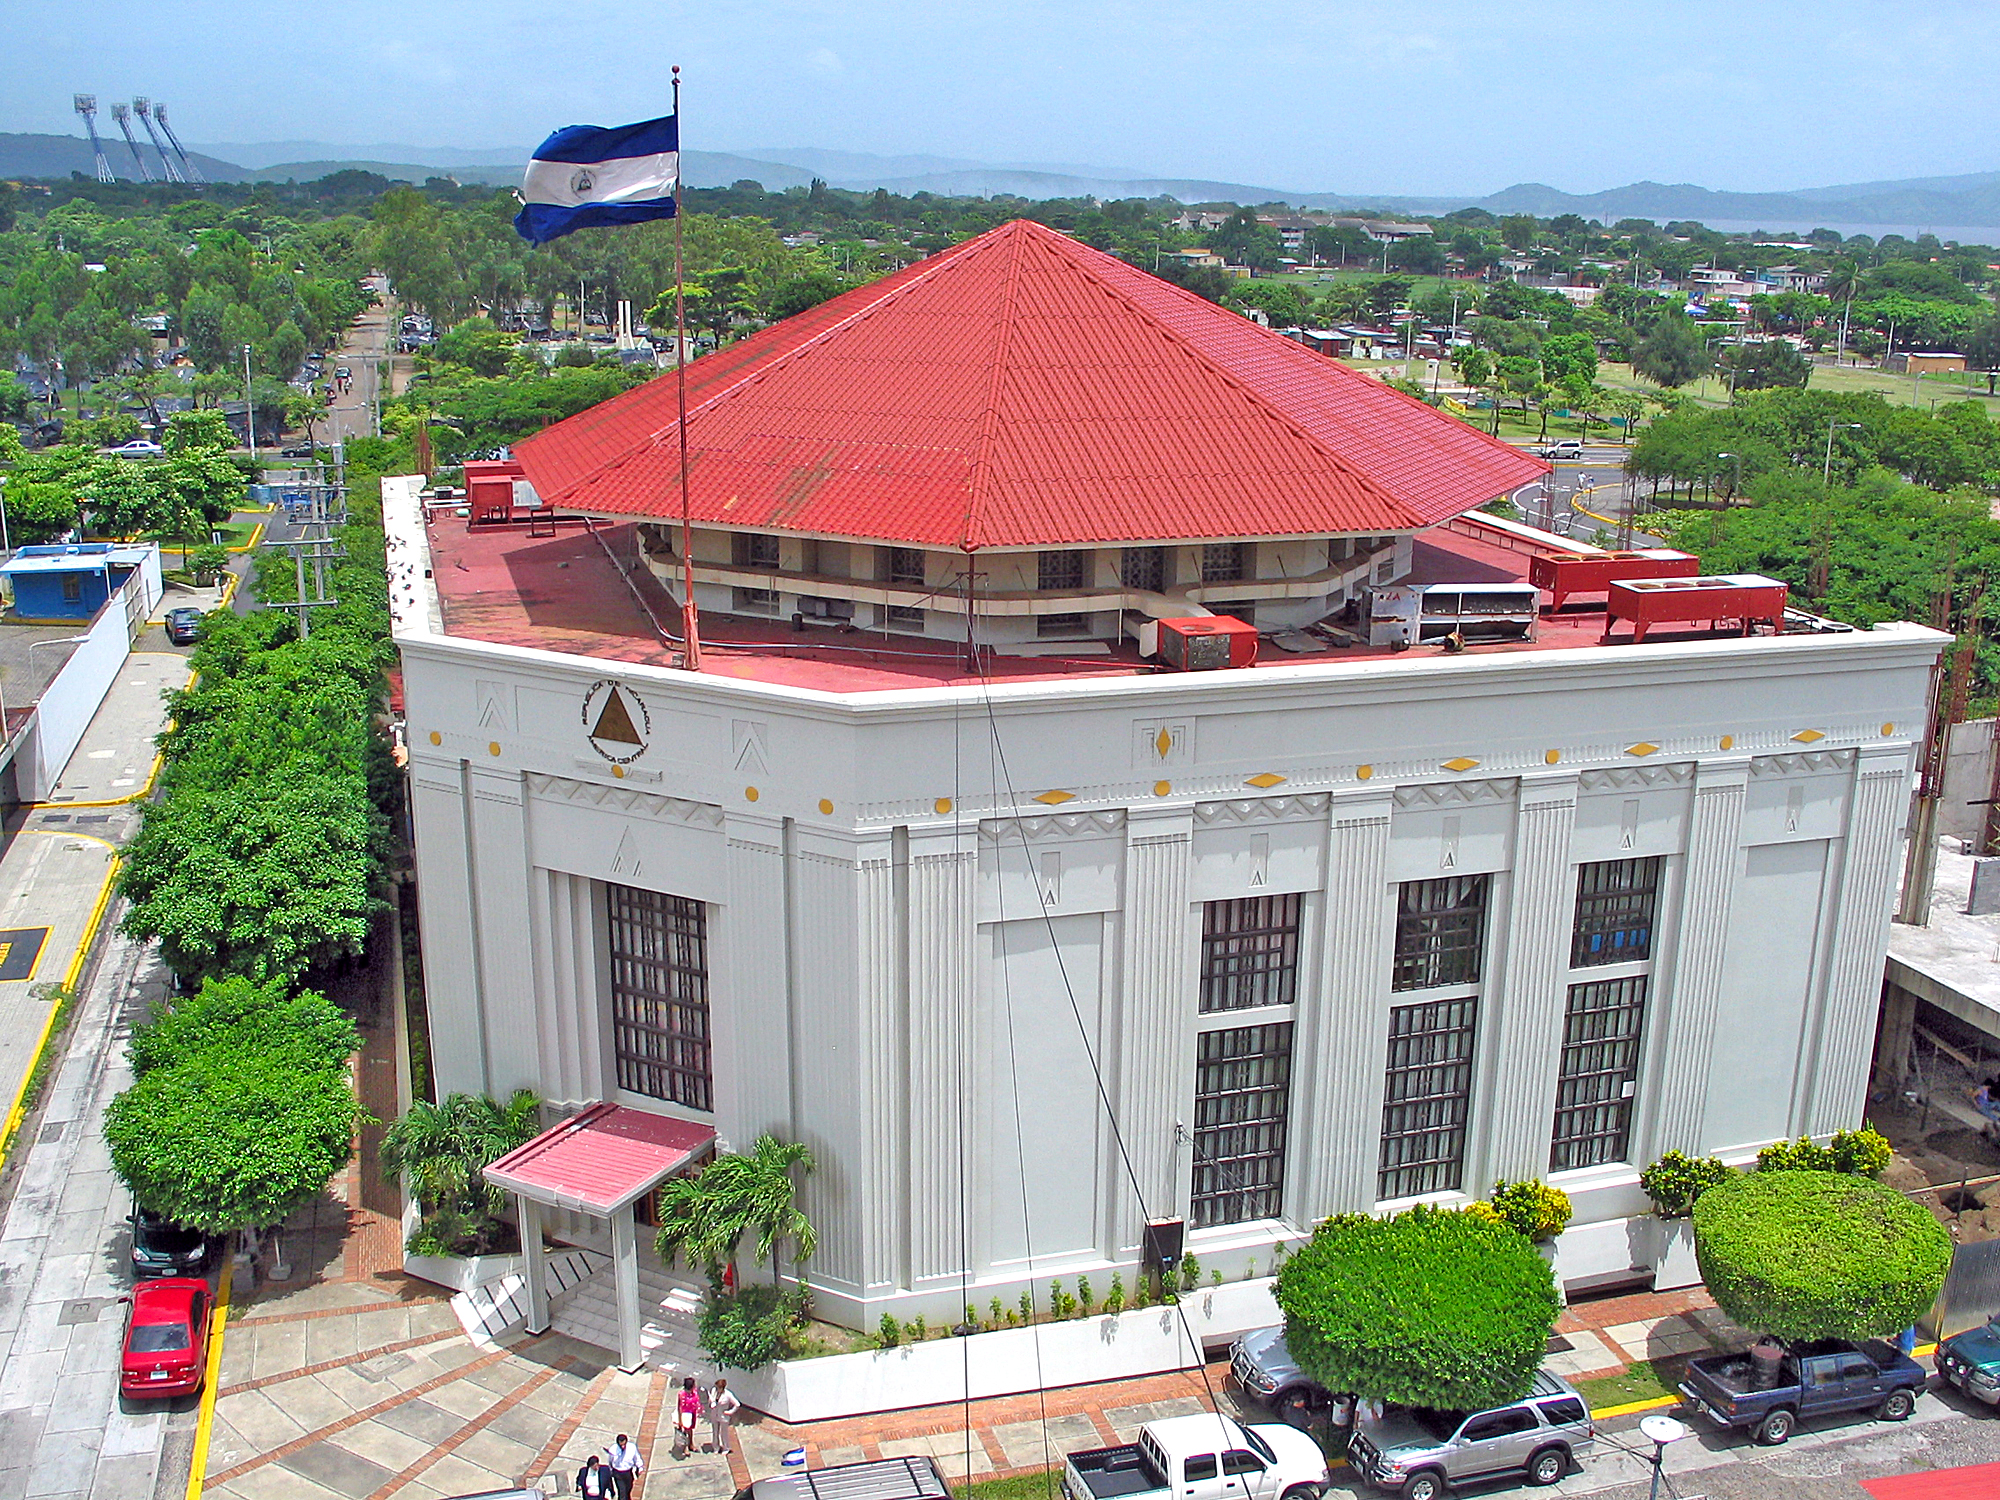 Nicaraguan National Assembly (photo credit: J.Ramirez/flickr)